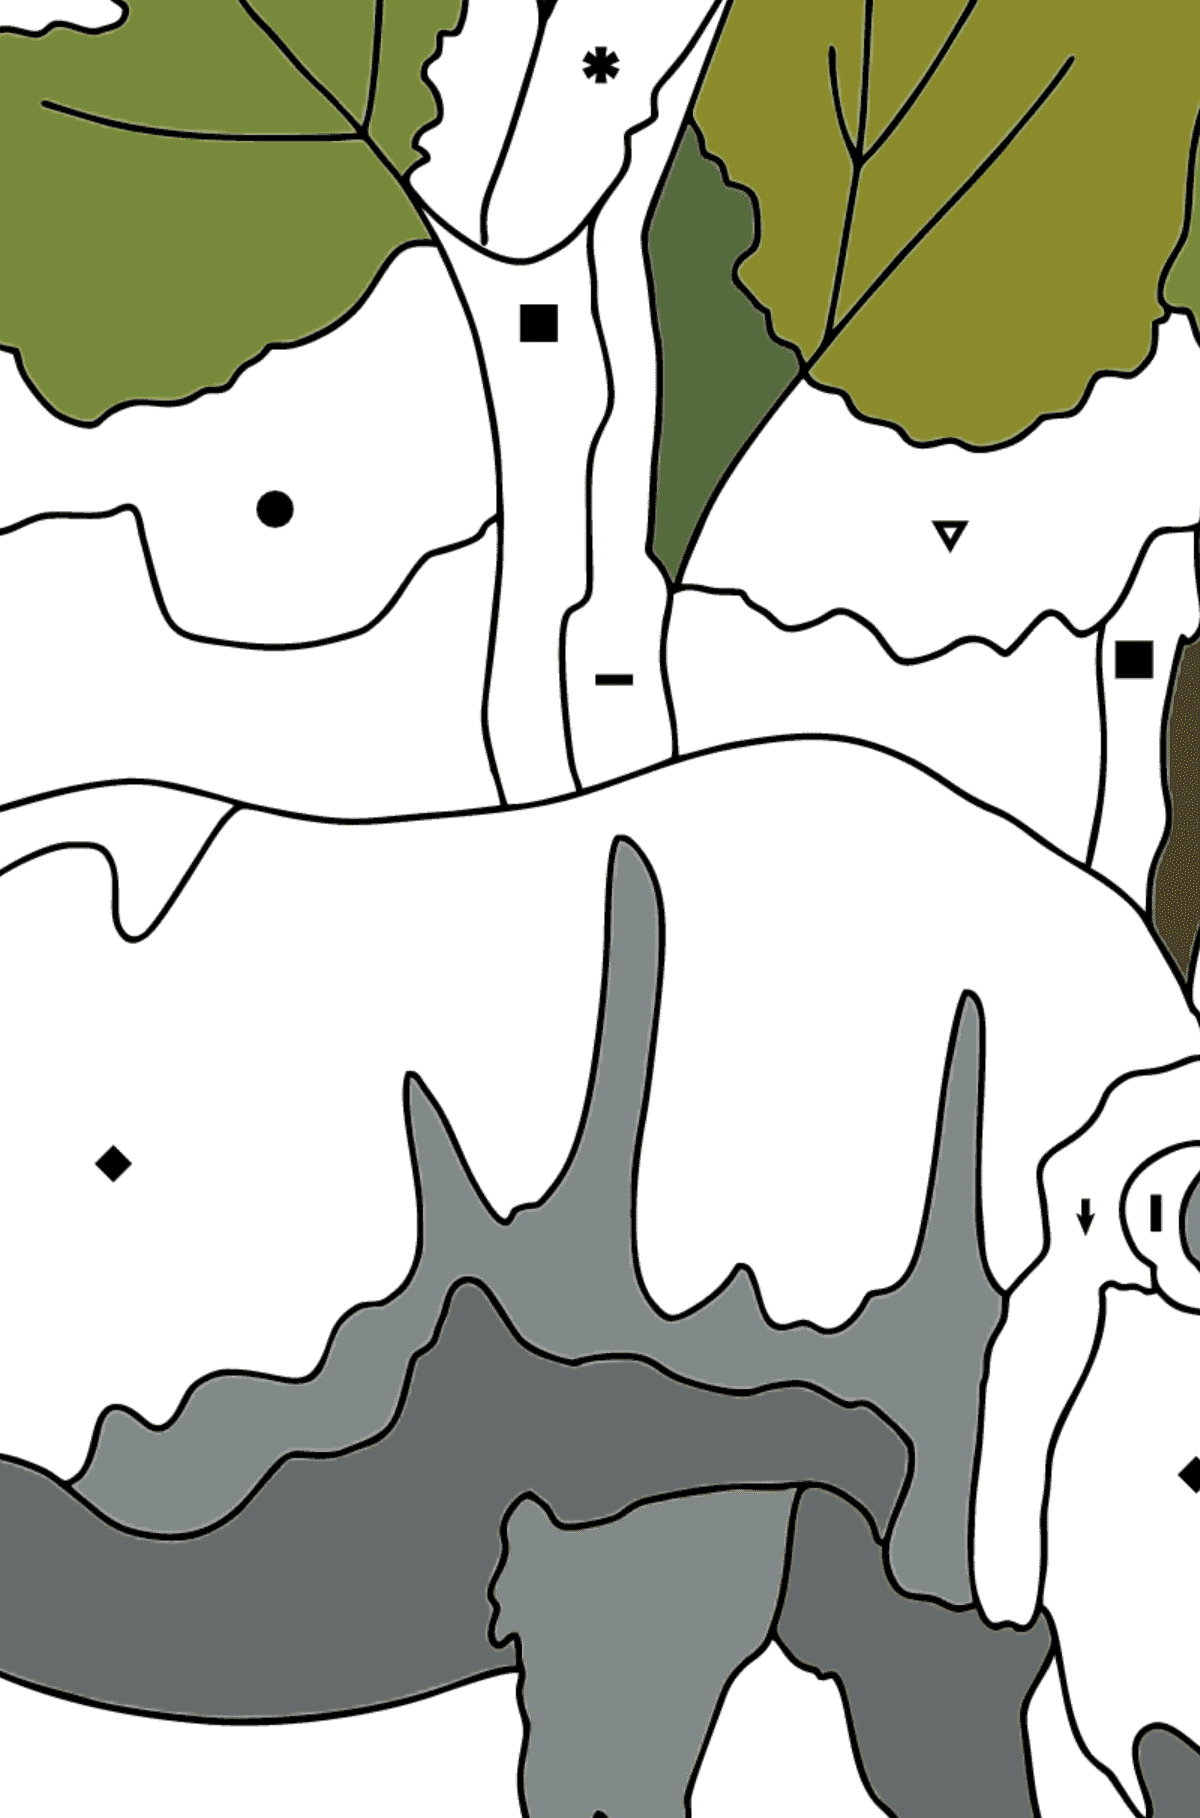 Coloring Page - A Rhino is Eating - Coloring by Symbols for Kids